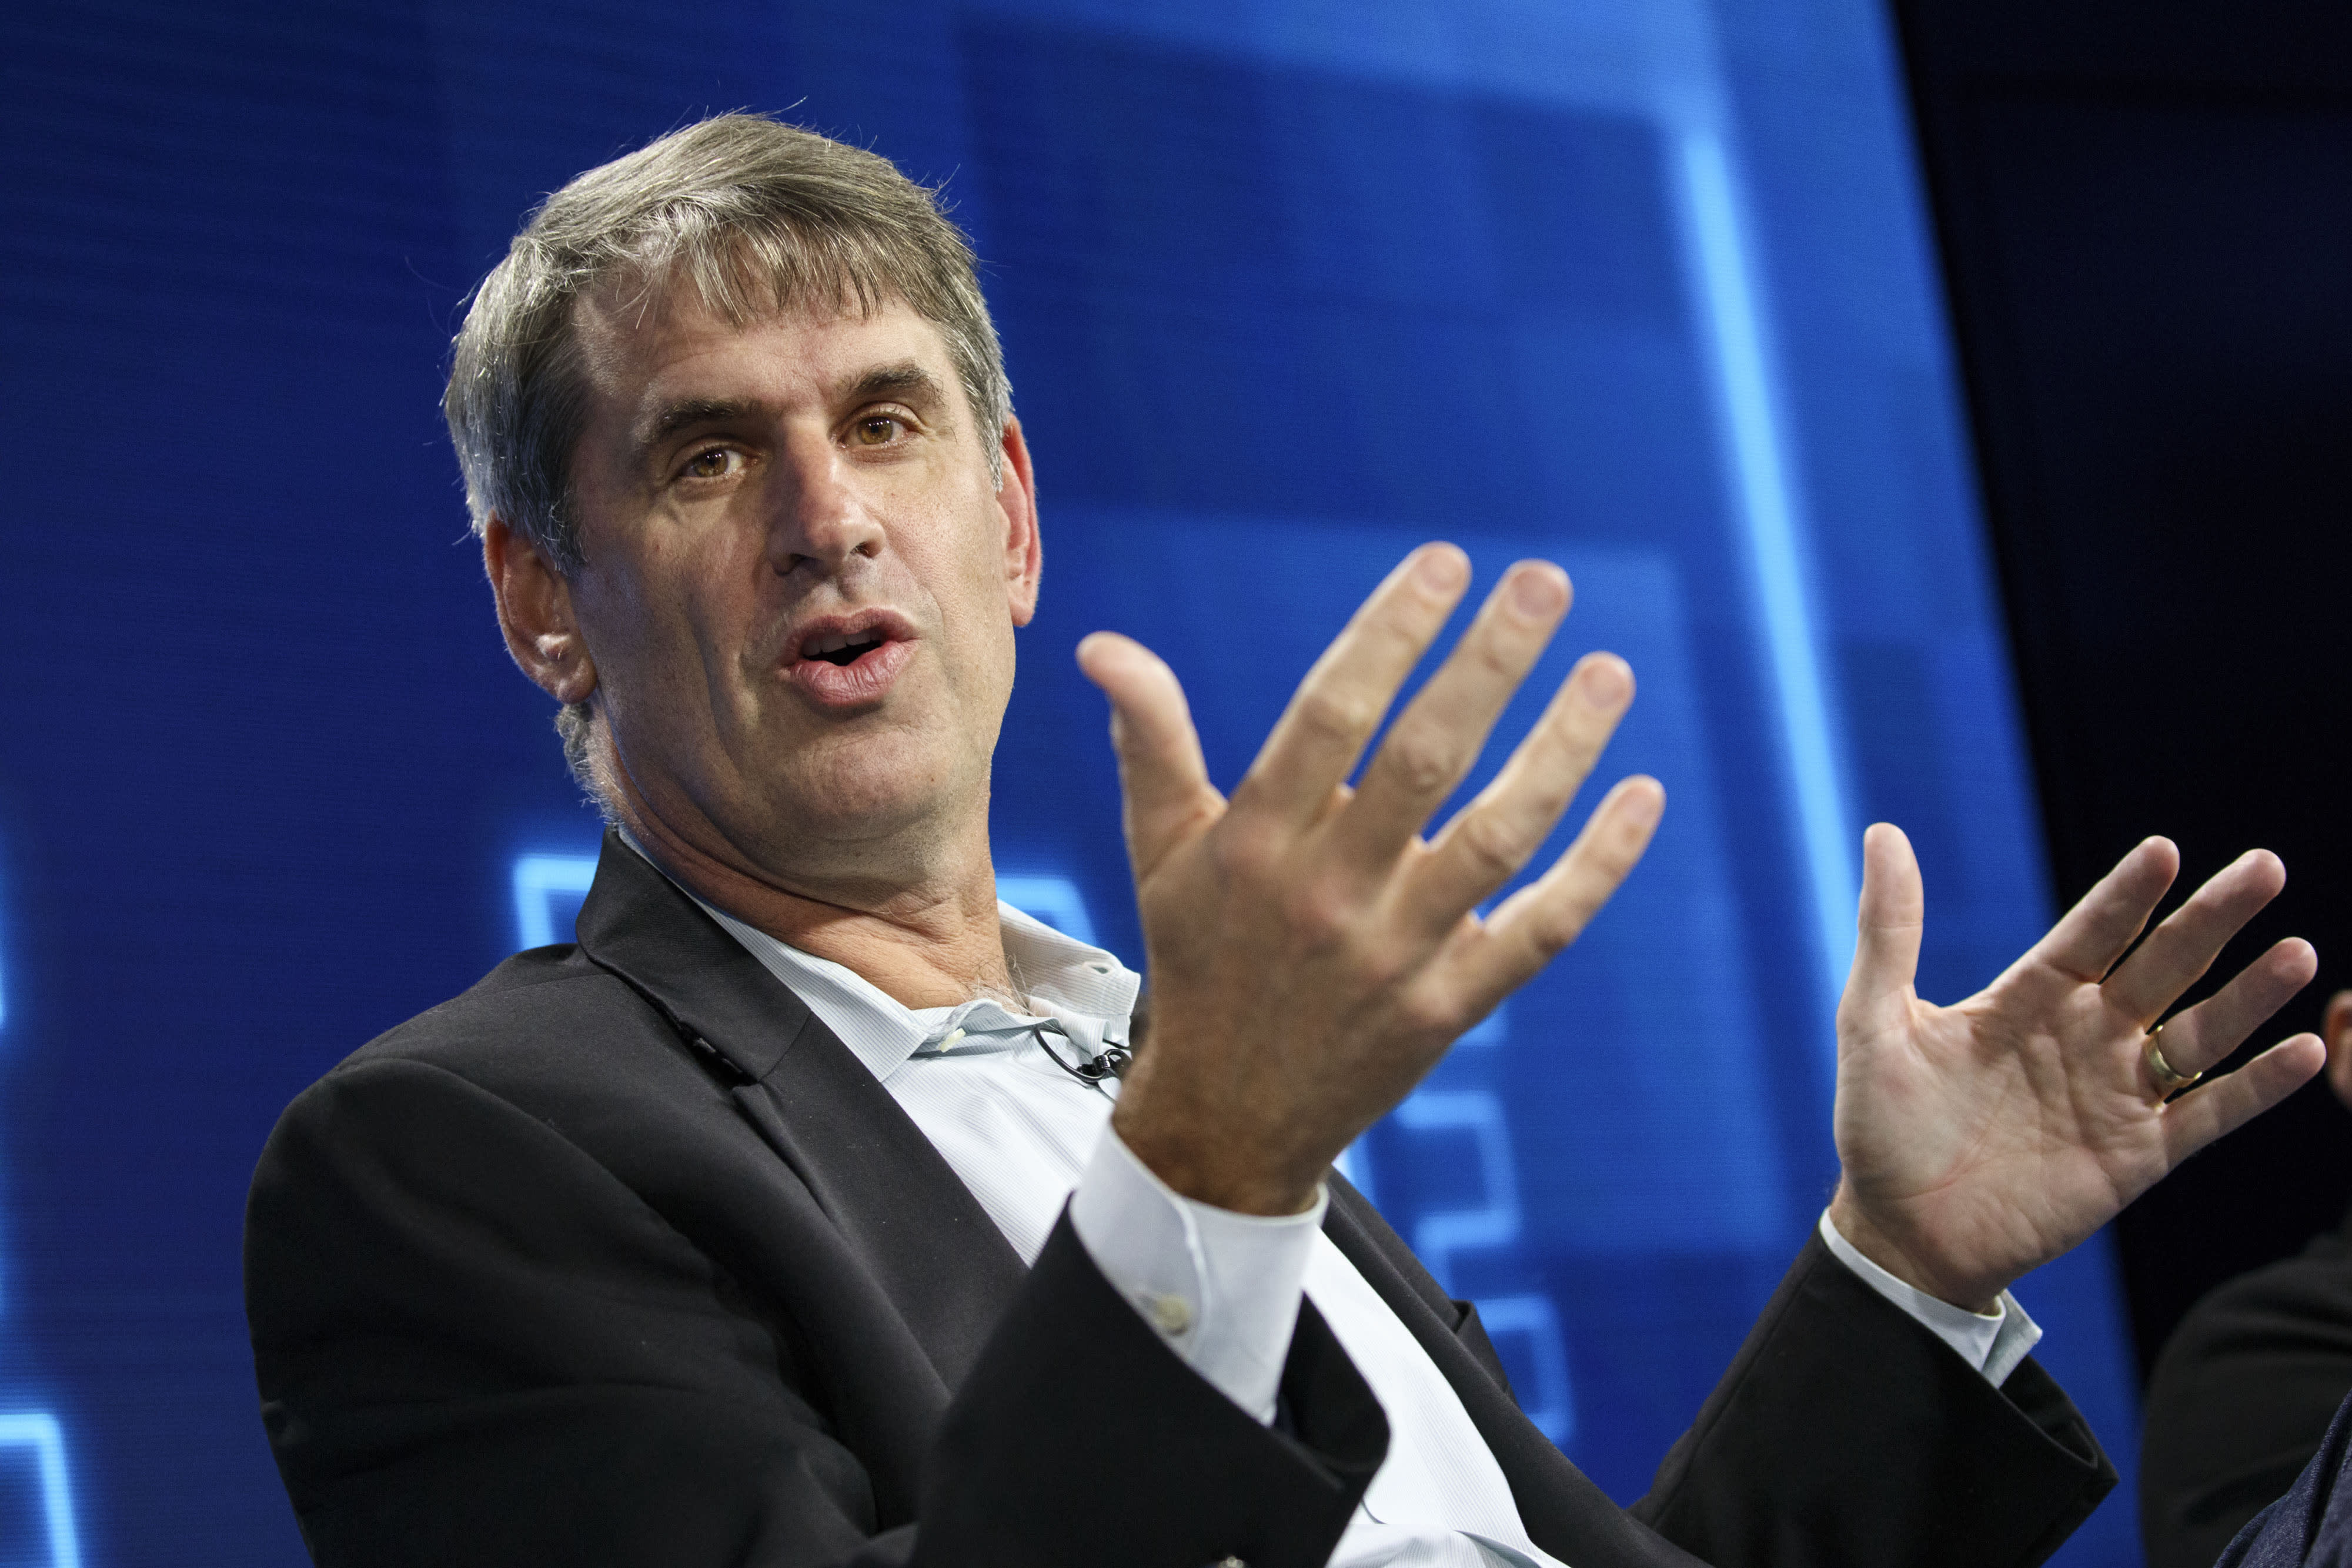 'The IPO process has devolved,' tech investor Bill Gurley says as he leads a direct listing movement